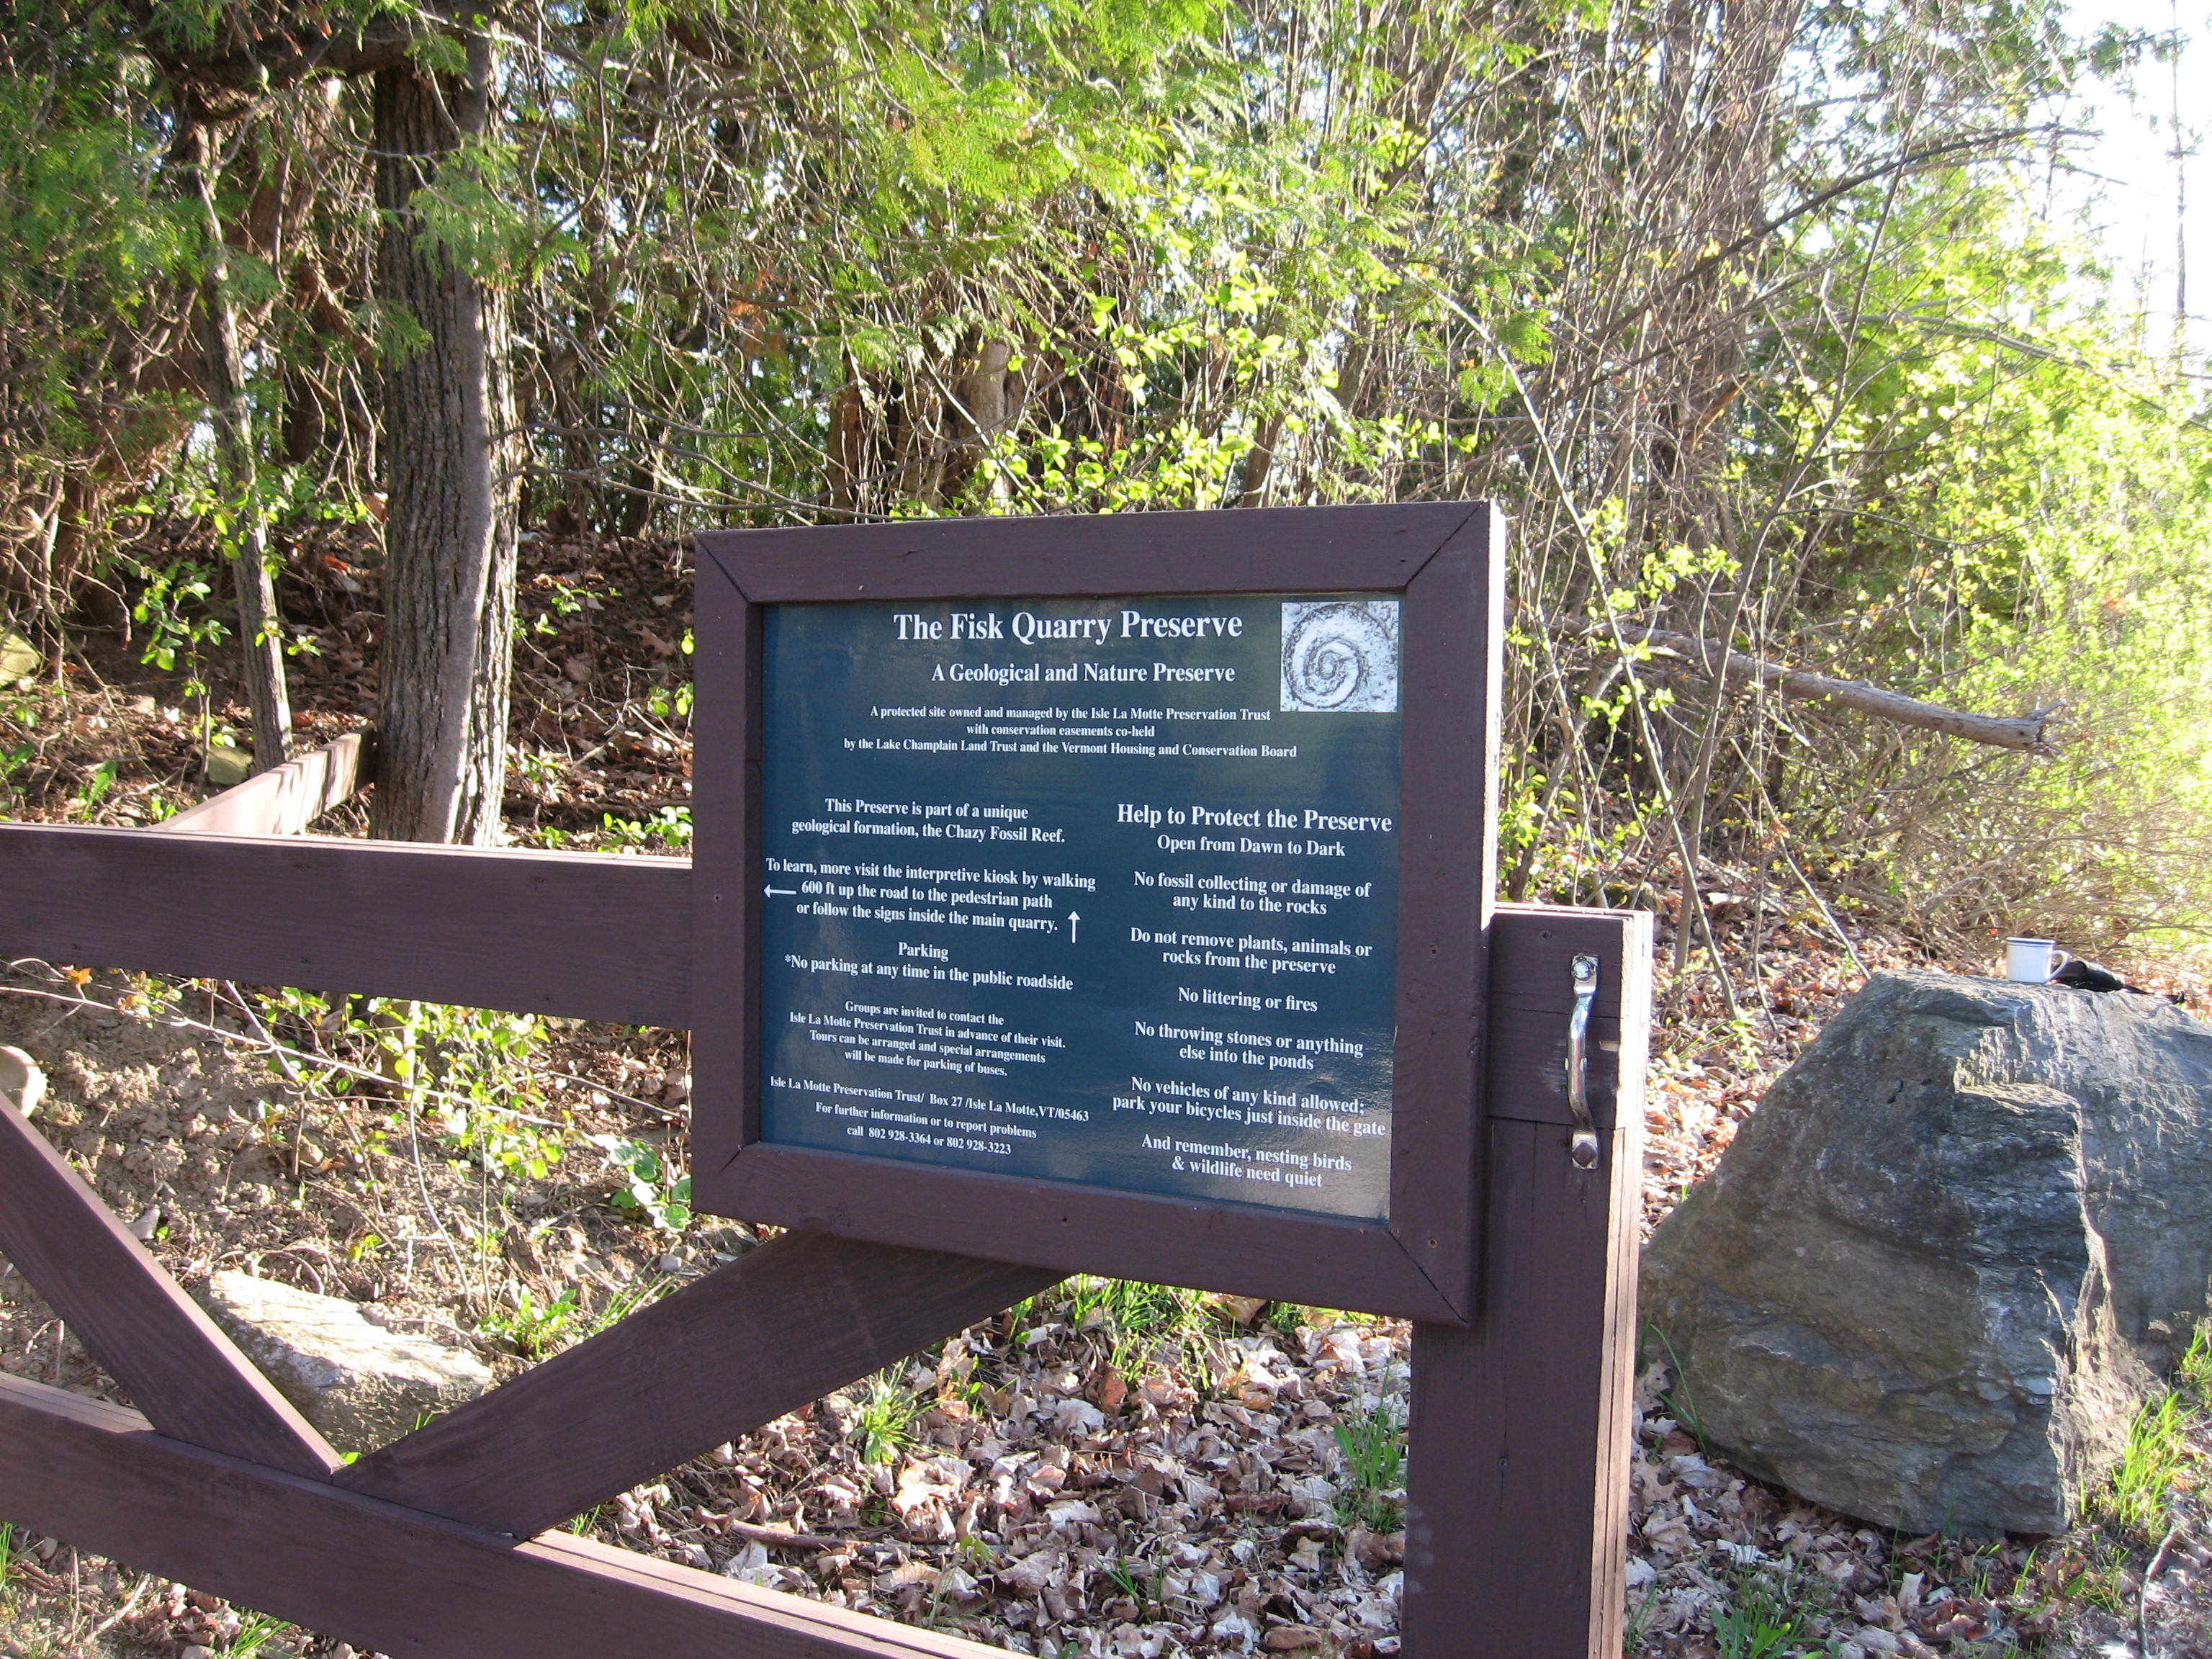 The Fisk Quarry Preserve Entrance